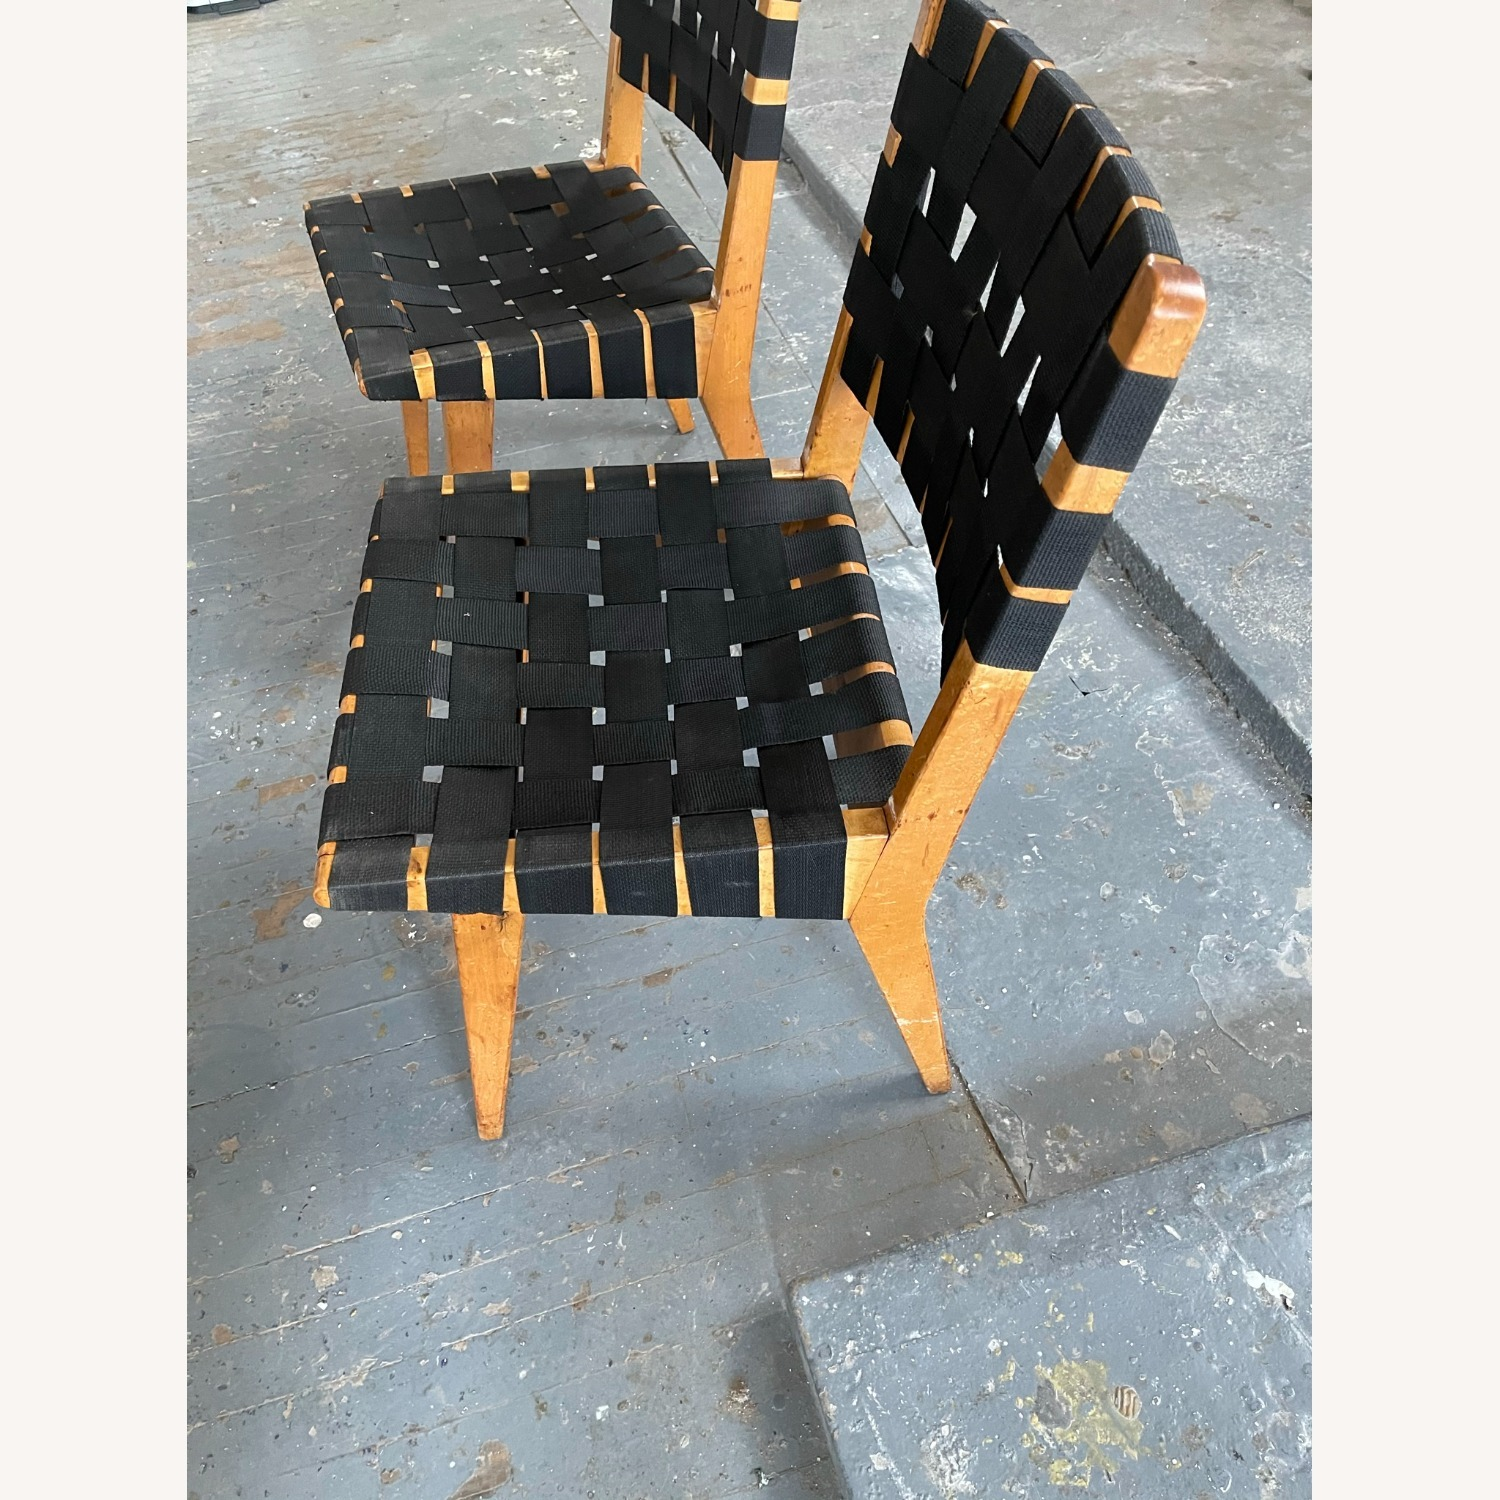 Knoll Vintage Jens Risom Chairs - image-2